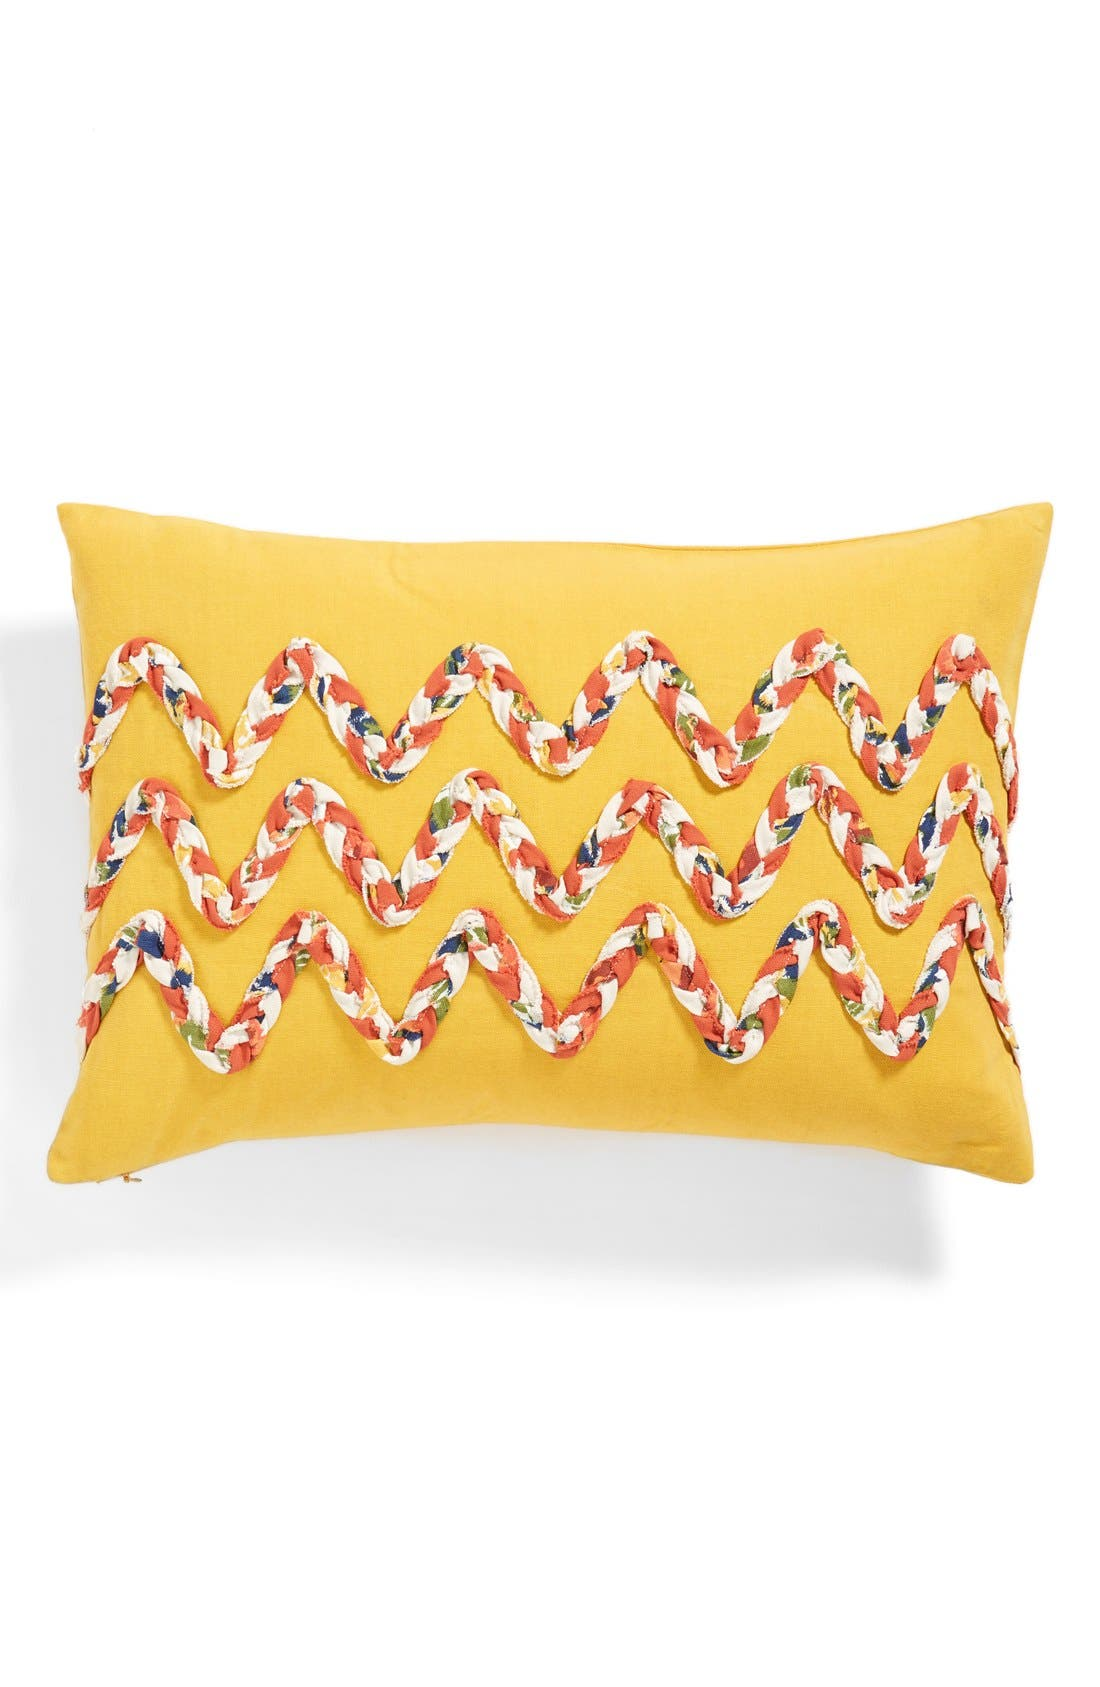 Alternate Image 1 Selected - Nordstrom at Home 'Ziggy' Pillow